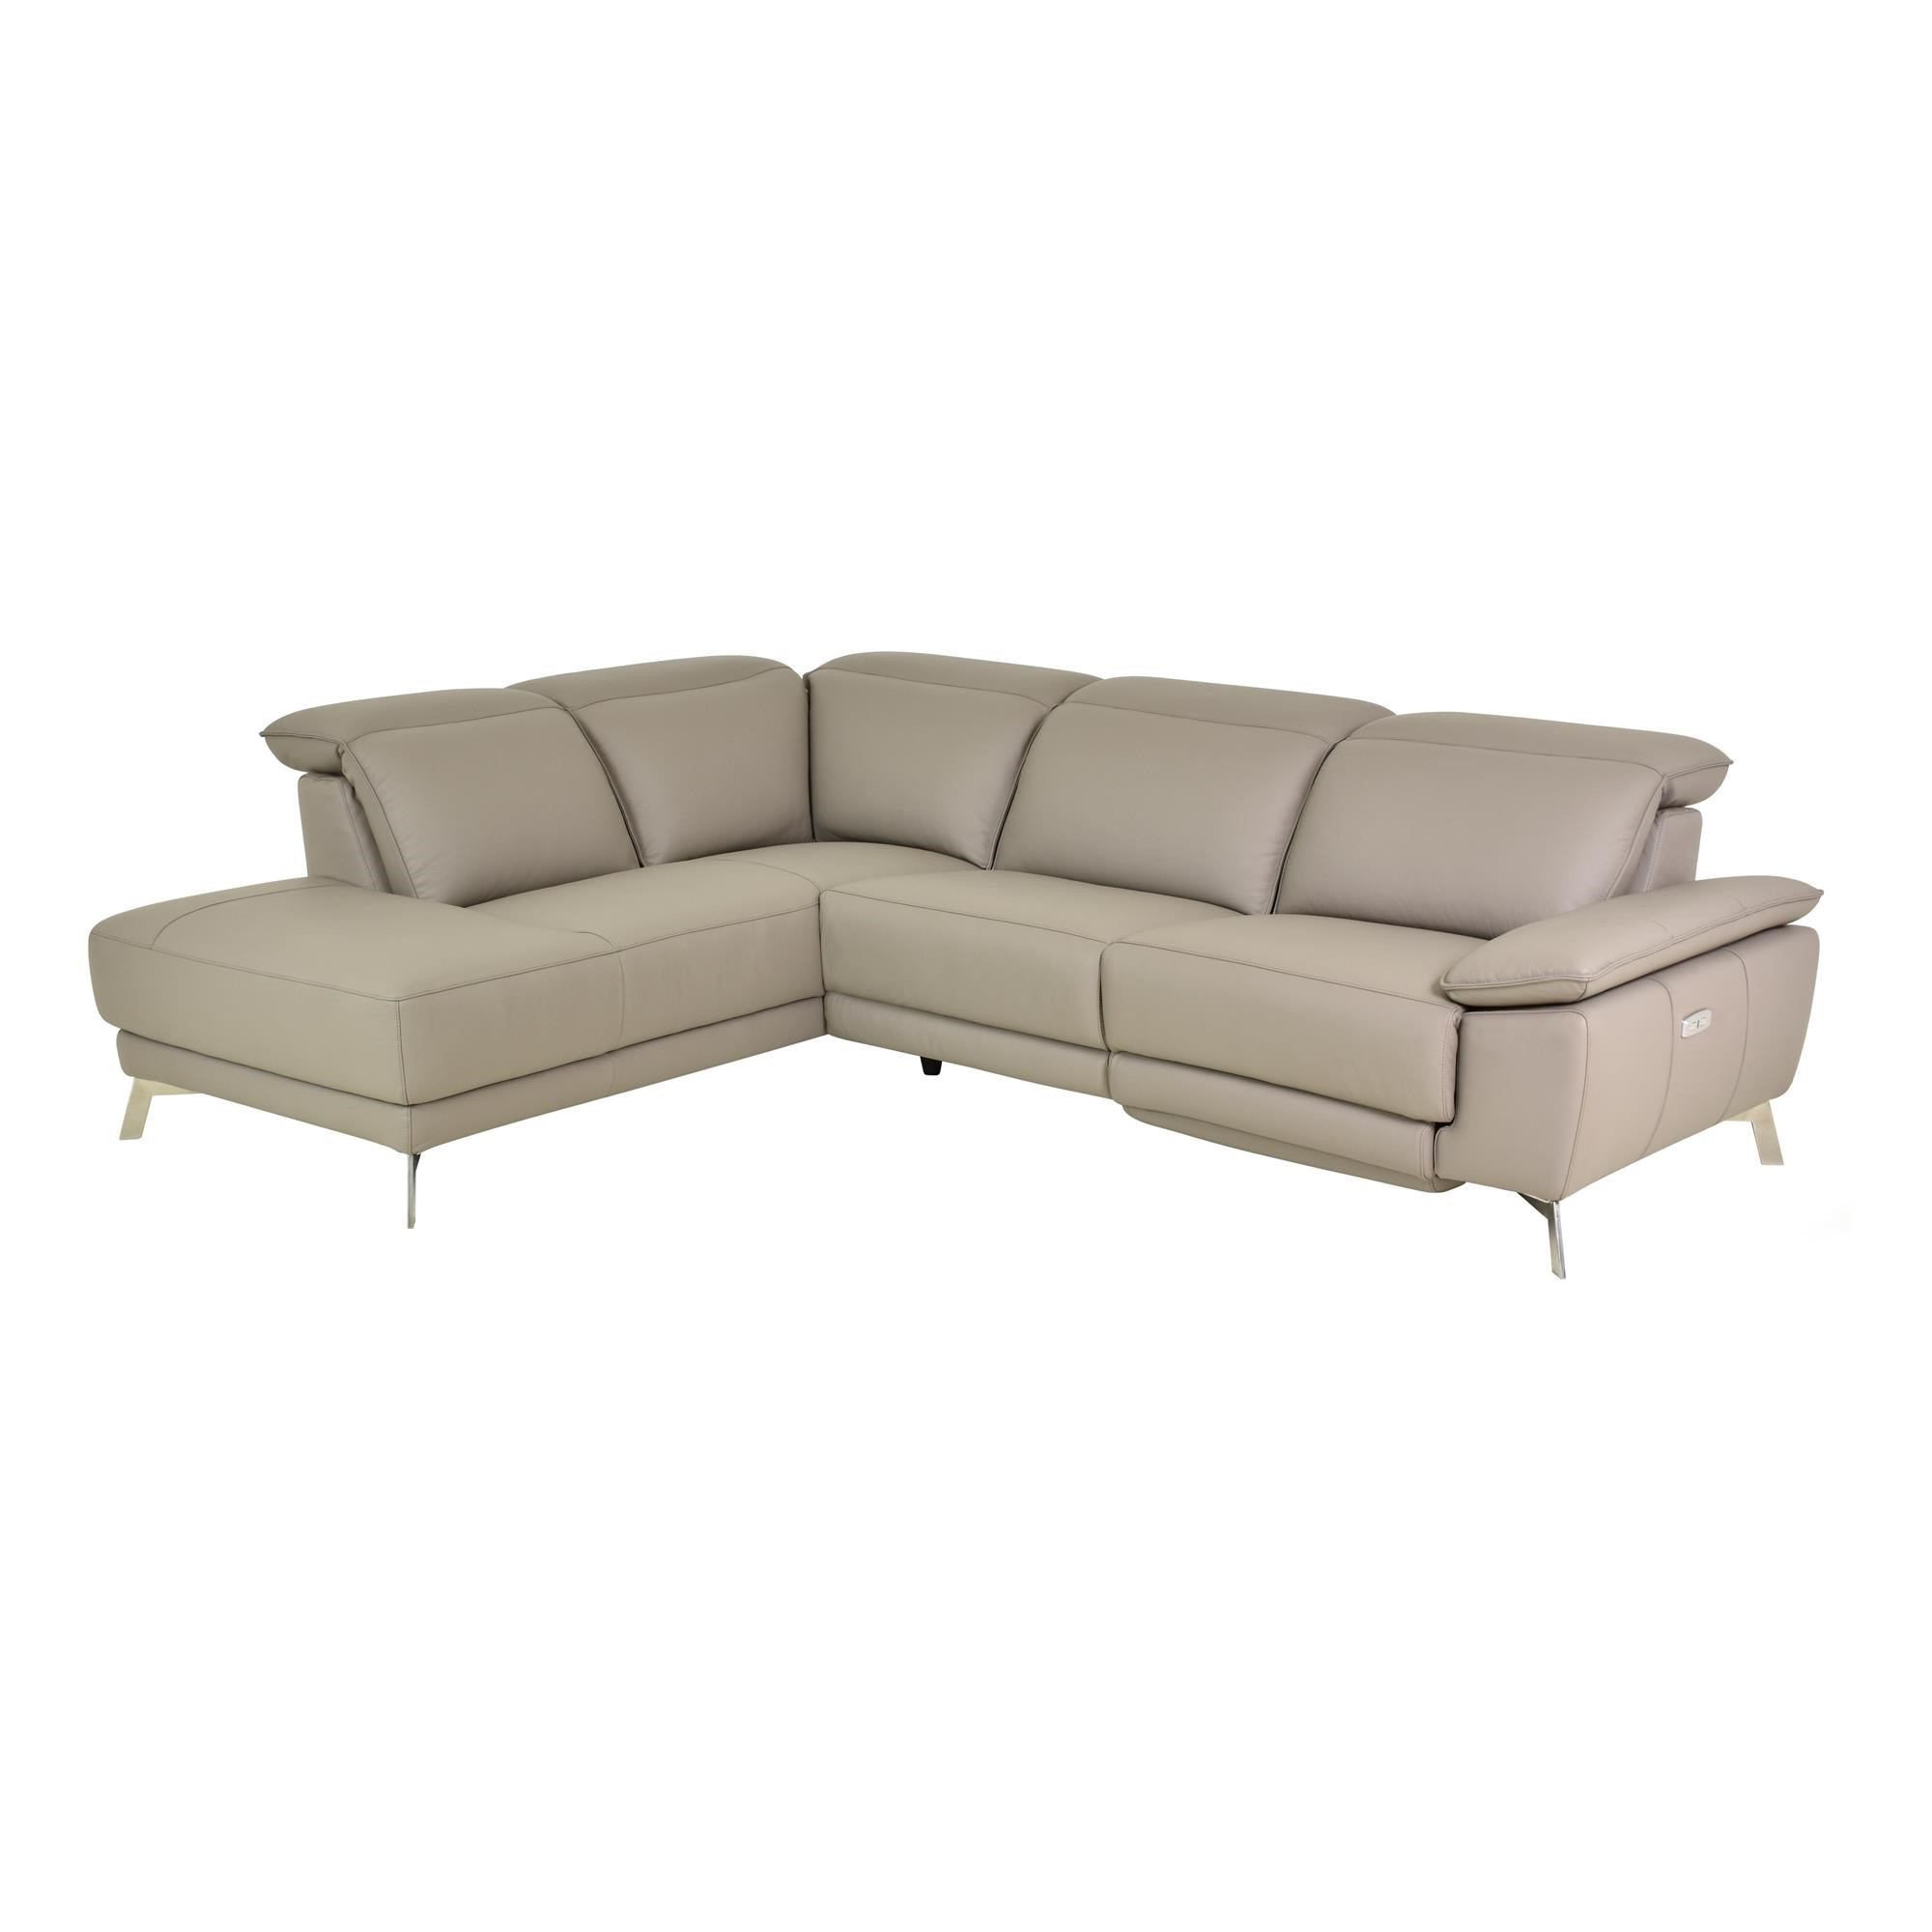 Zarla 5 Seater Leather Corner Sofa with Left Hand Facing Chaise, Taupe